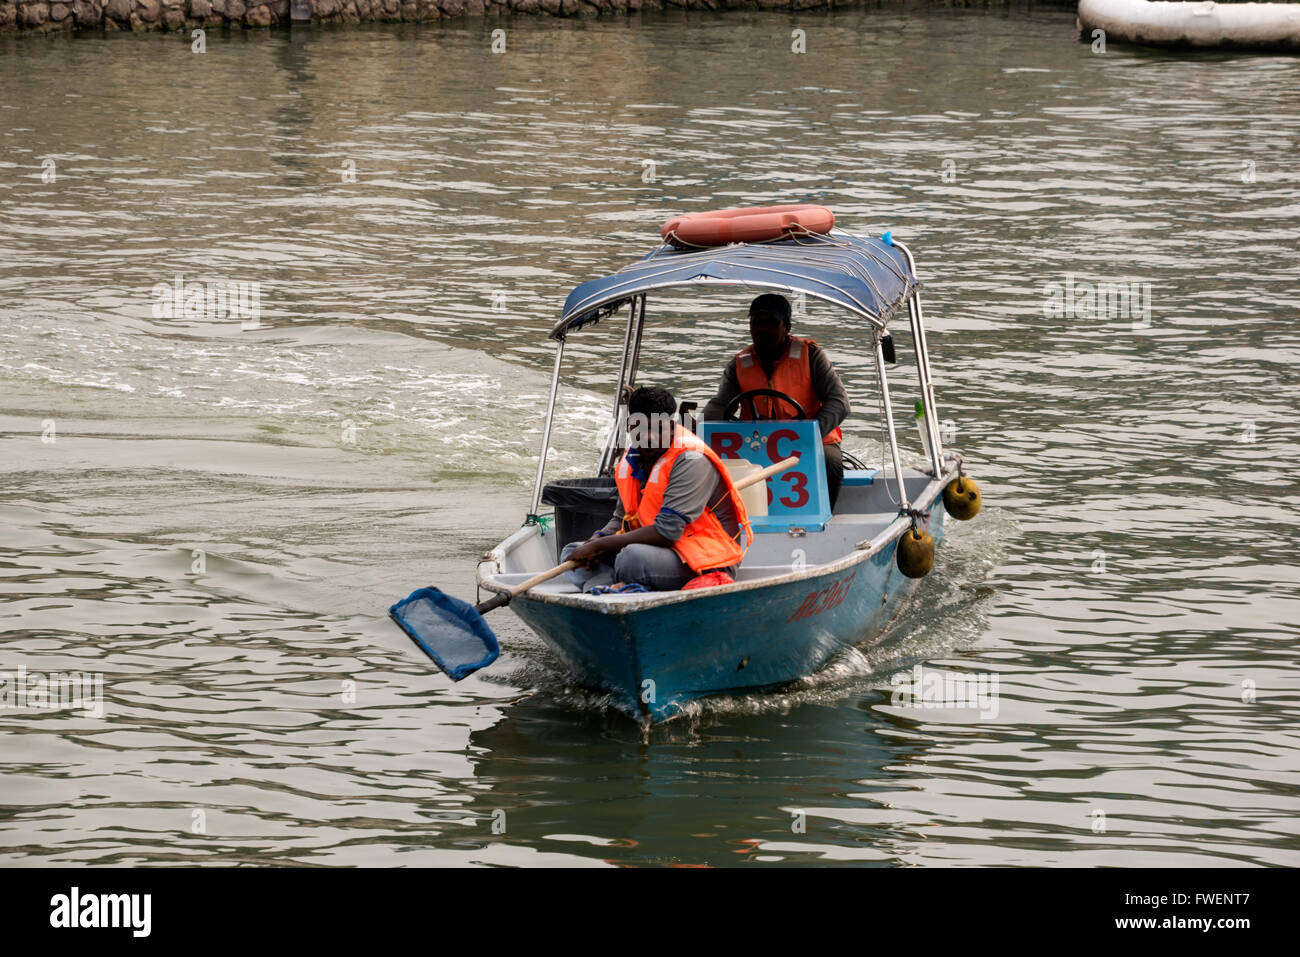 A boat crew cleaning up dumpted rubbish and floating objects on the Singapore river in Singapore - Stock Image